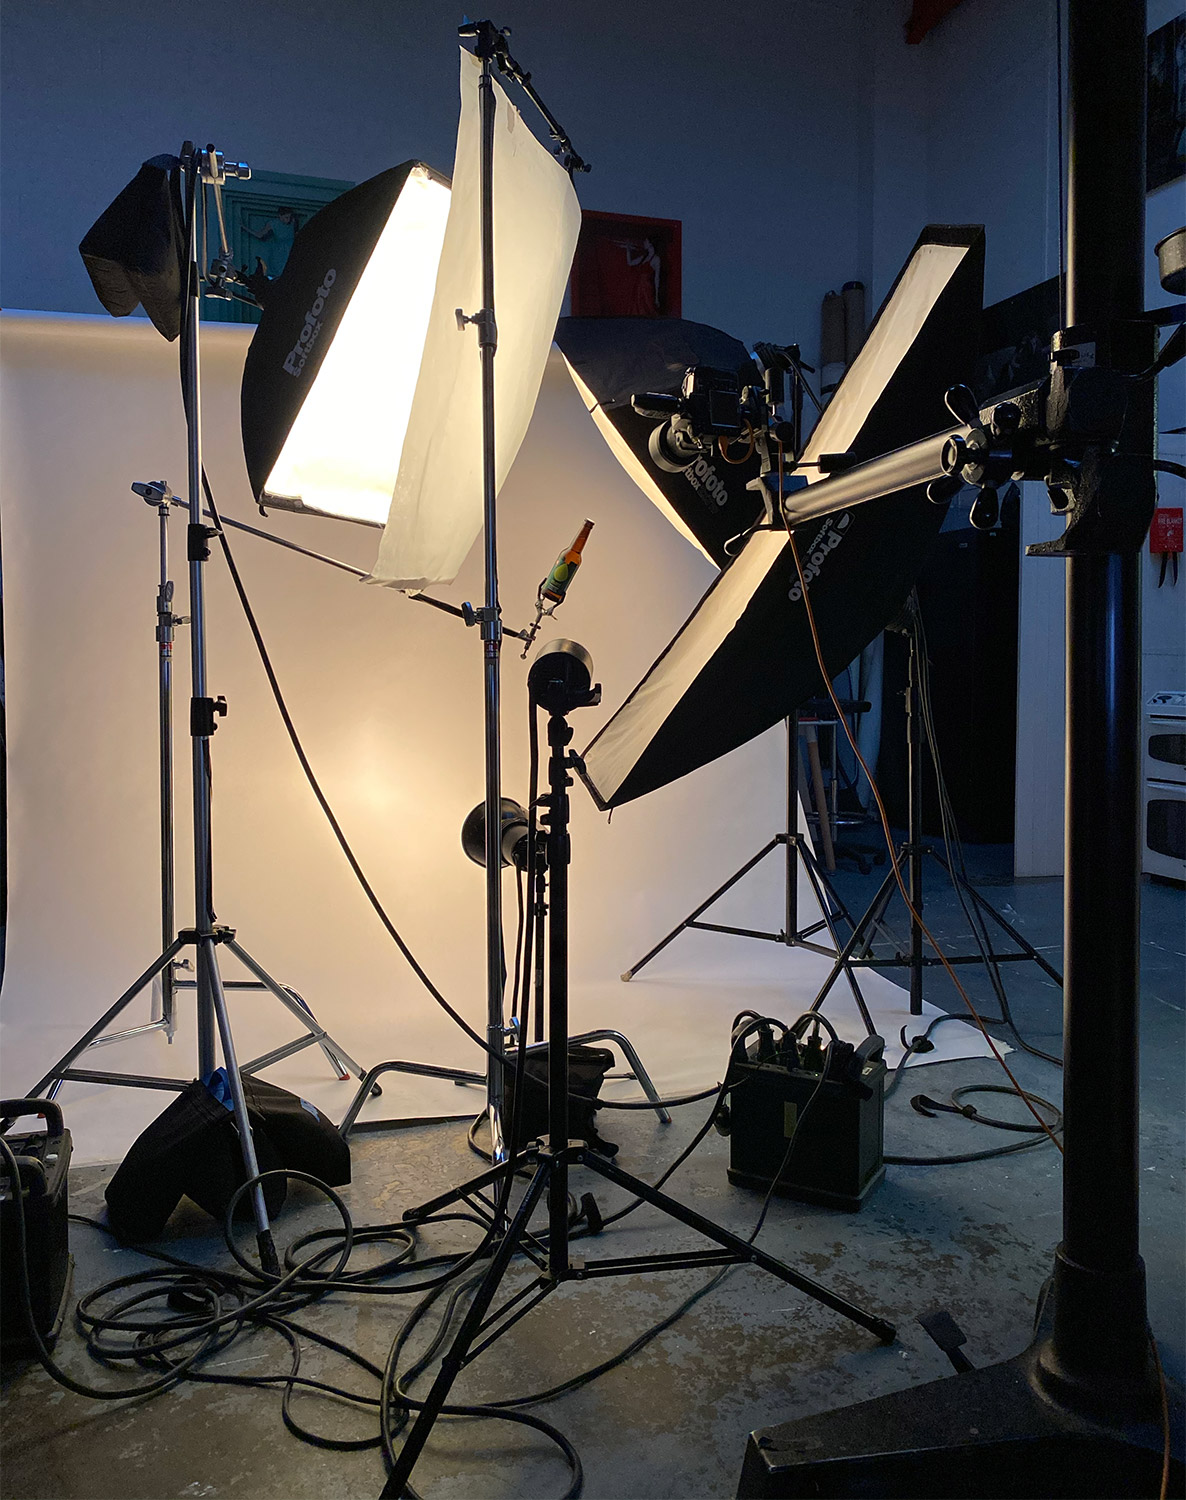 Behind the scenes on a beer photo shoot, showing lights and studio